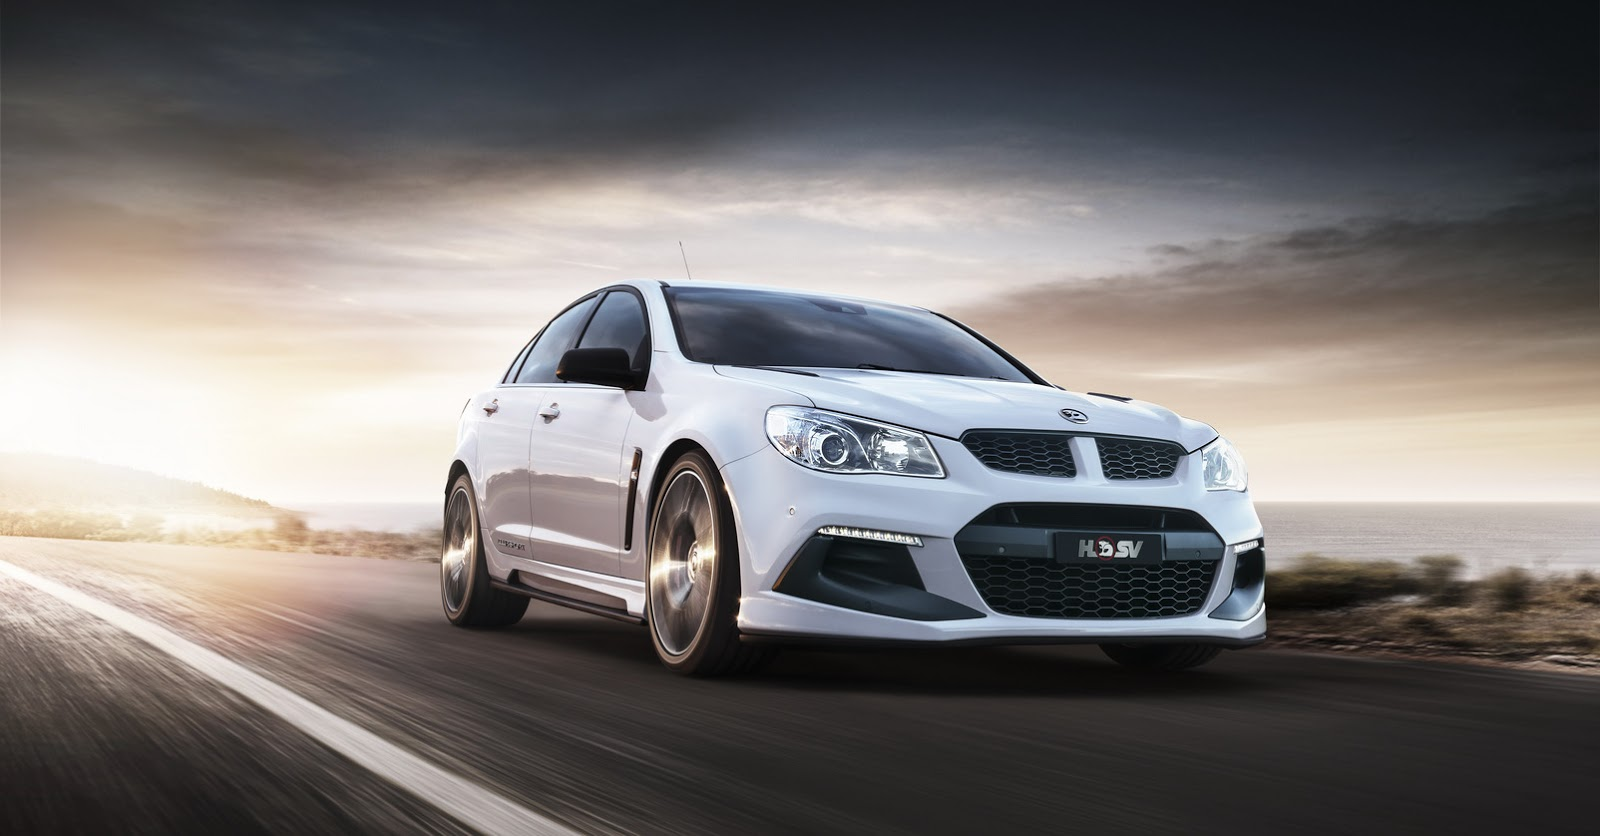 HSV: Final HSV With ZR1's 638 HP Engine To Be Dubbed GTS-R W1